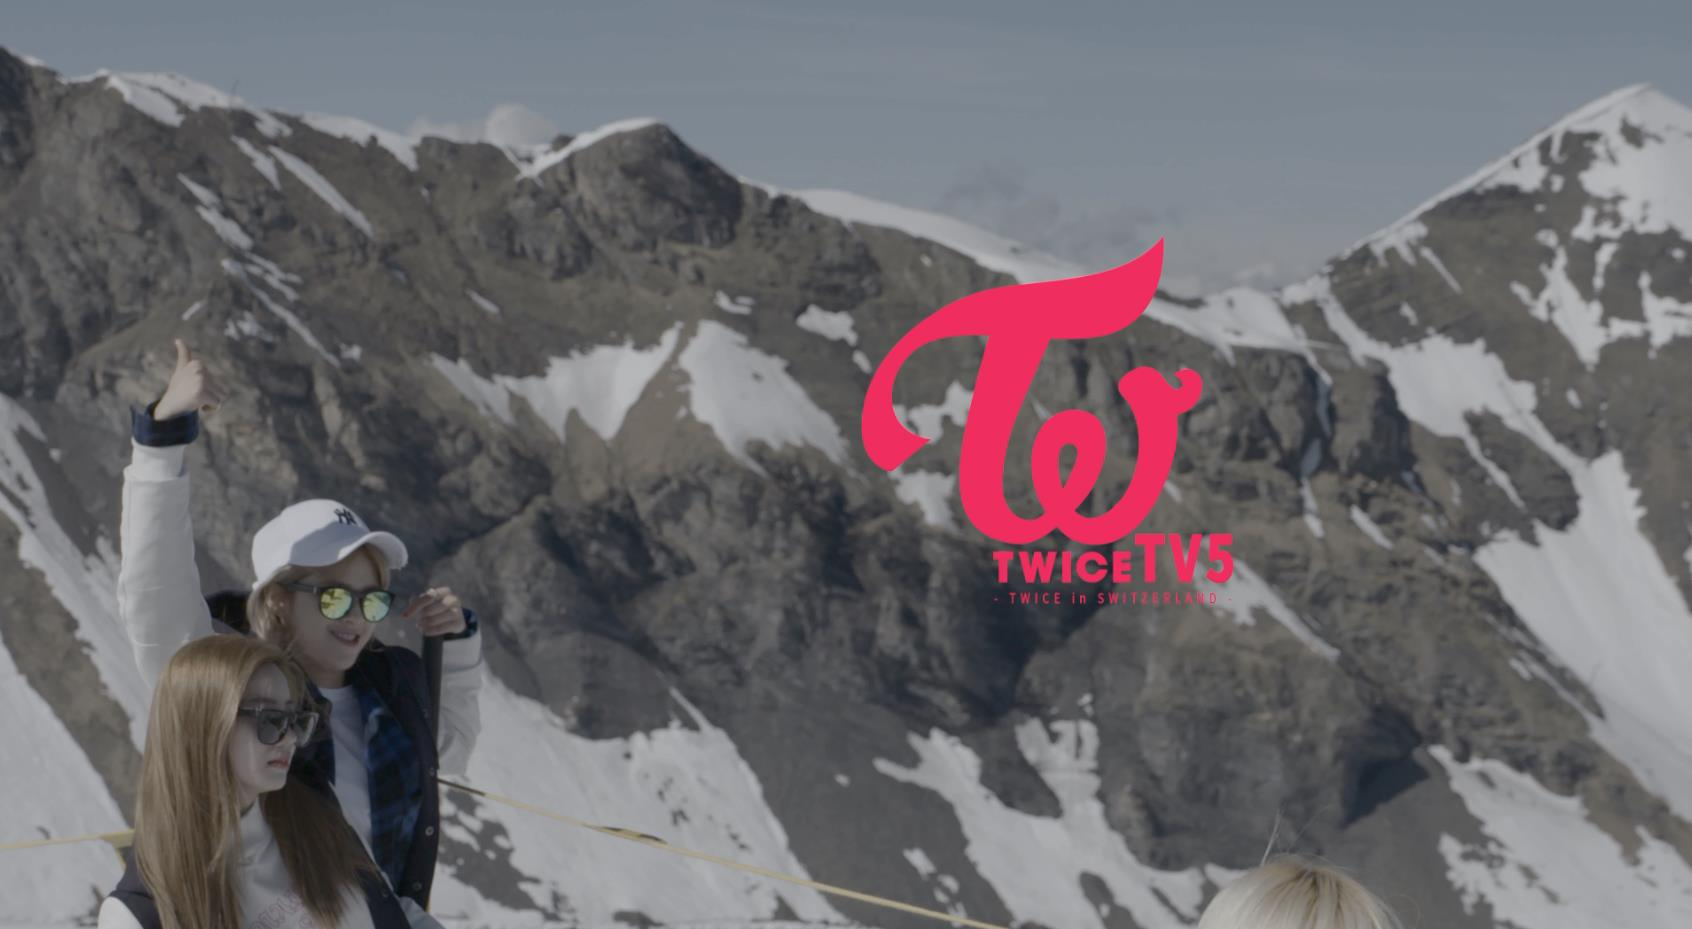 TWICE TV5 -TWICE in SWITZERLAND- EP.18